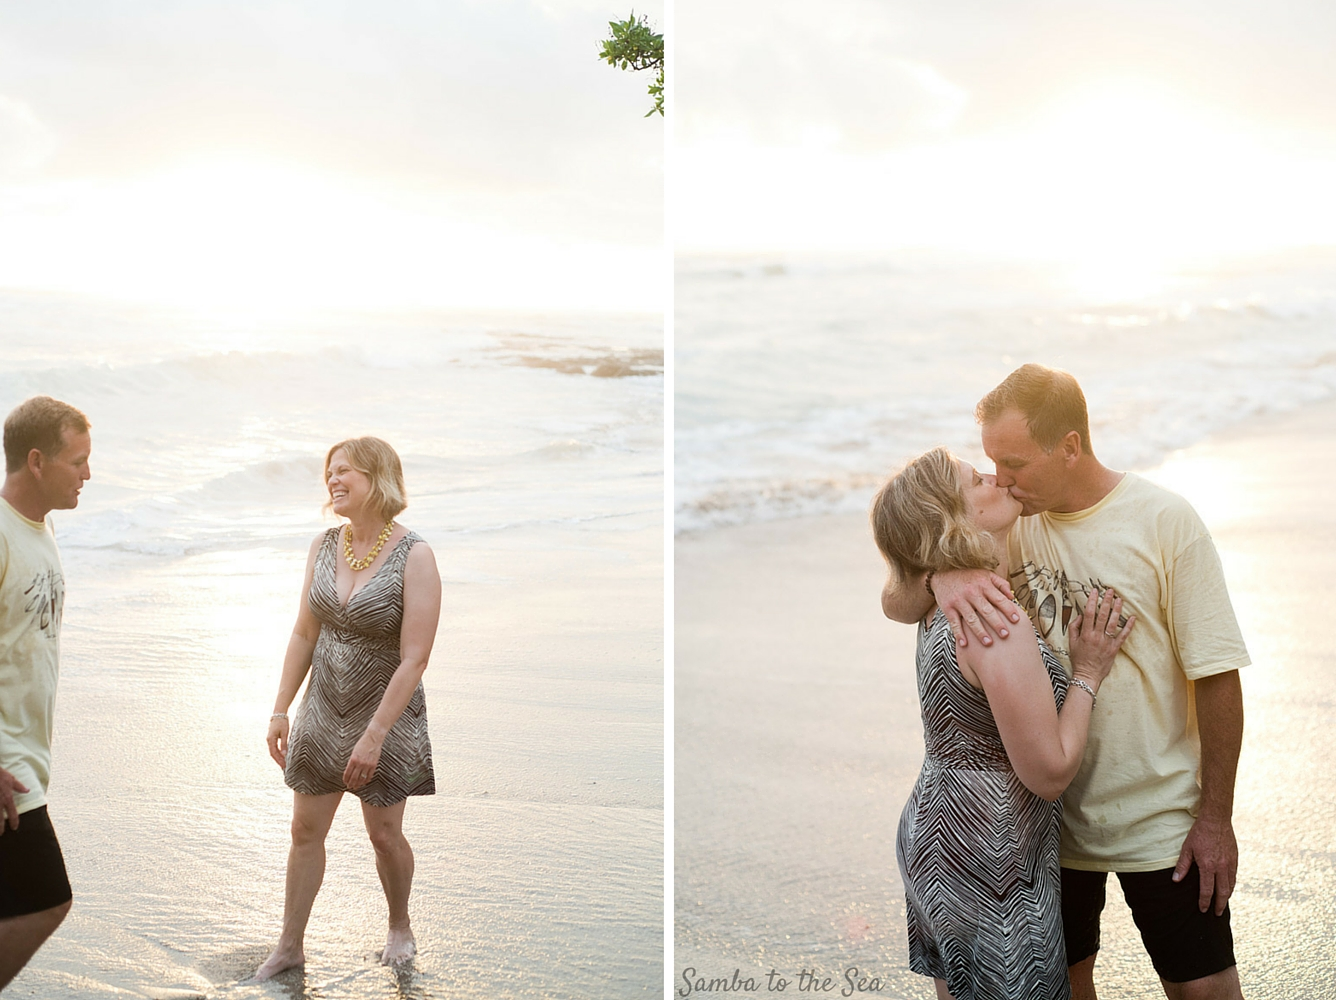 Couple on the beach at sunset in Costa Rica. Photographed by Kristen M. Brown, Samba to the Sea Photography.